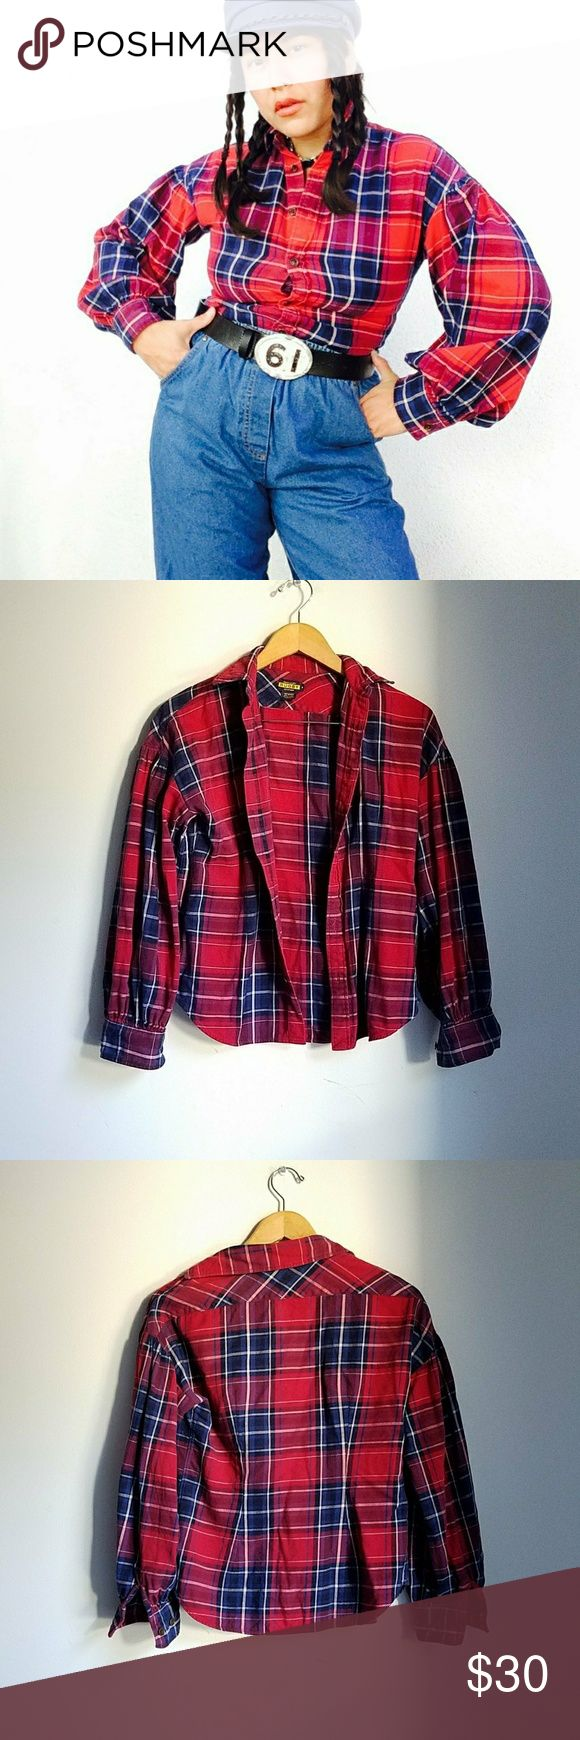 "RL balloon sleeves boho grunge plaid flannel Ralph Lauren Rugby balloon sleeves plaid flannel button down shirt. Red / blue combo. Size 4 (s).   Wish this fit, I'd keep it 💔 Recommended for girls with A cups, as chest area is on the narrow side.   This pup looks perffff paired with high waisted skirts and bell bottoms, for a cool 70's retro look 😘  Measurements flat, closed:  Length: 22"" Armpit to armpit: 18"" Sleeves: 19""   ● 20% off on bundles    Vintage y2k RL Ralph Lauren plaid flannels…"